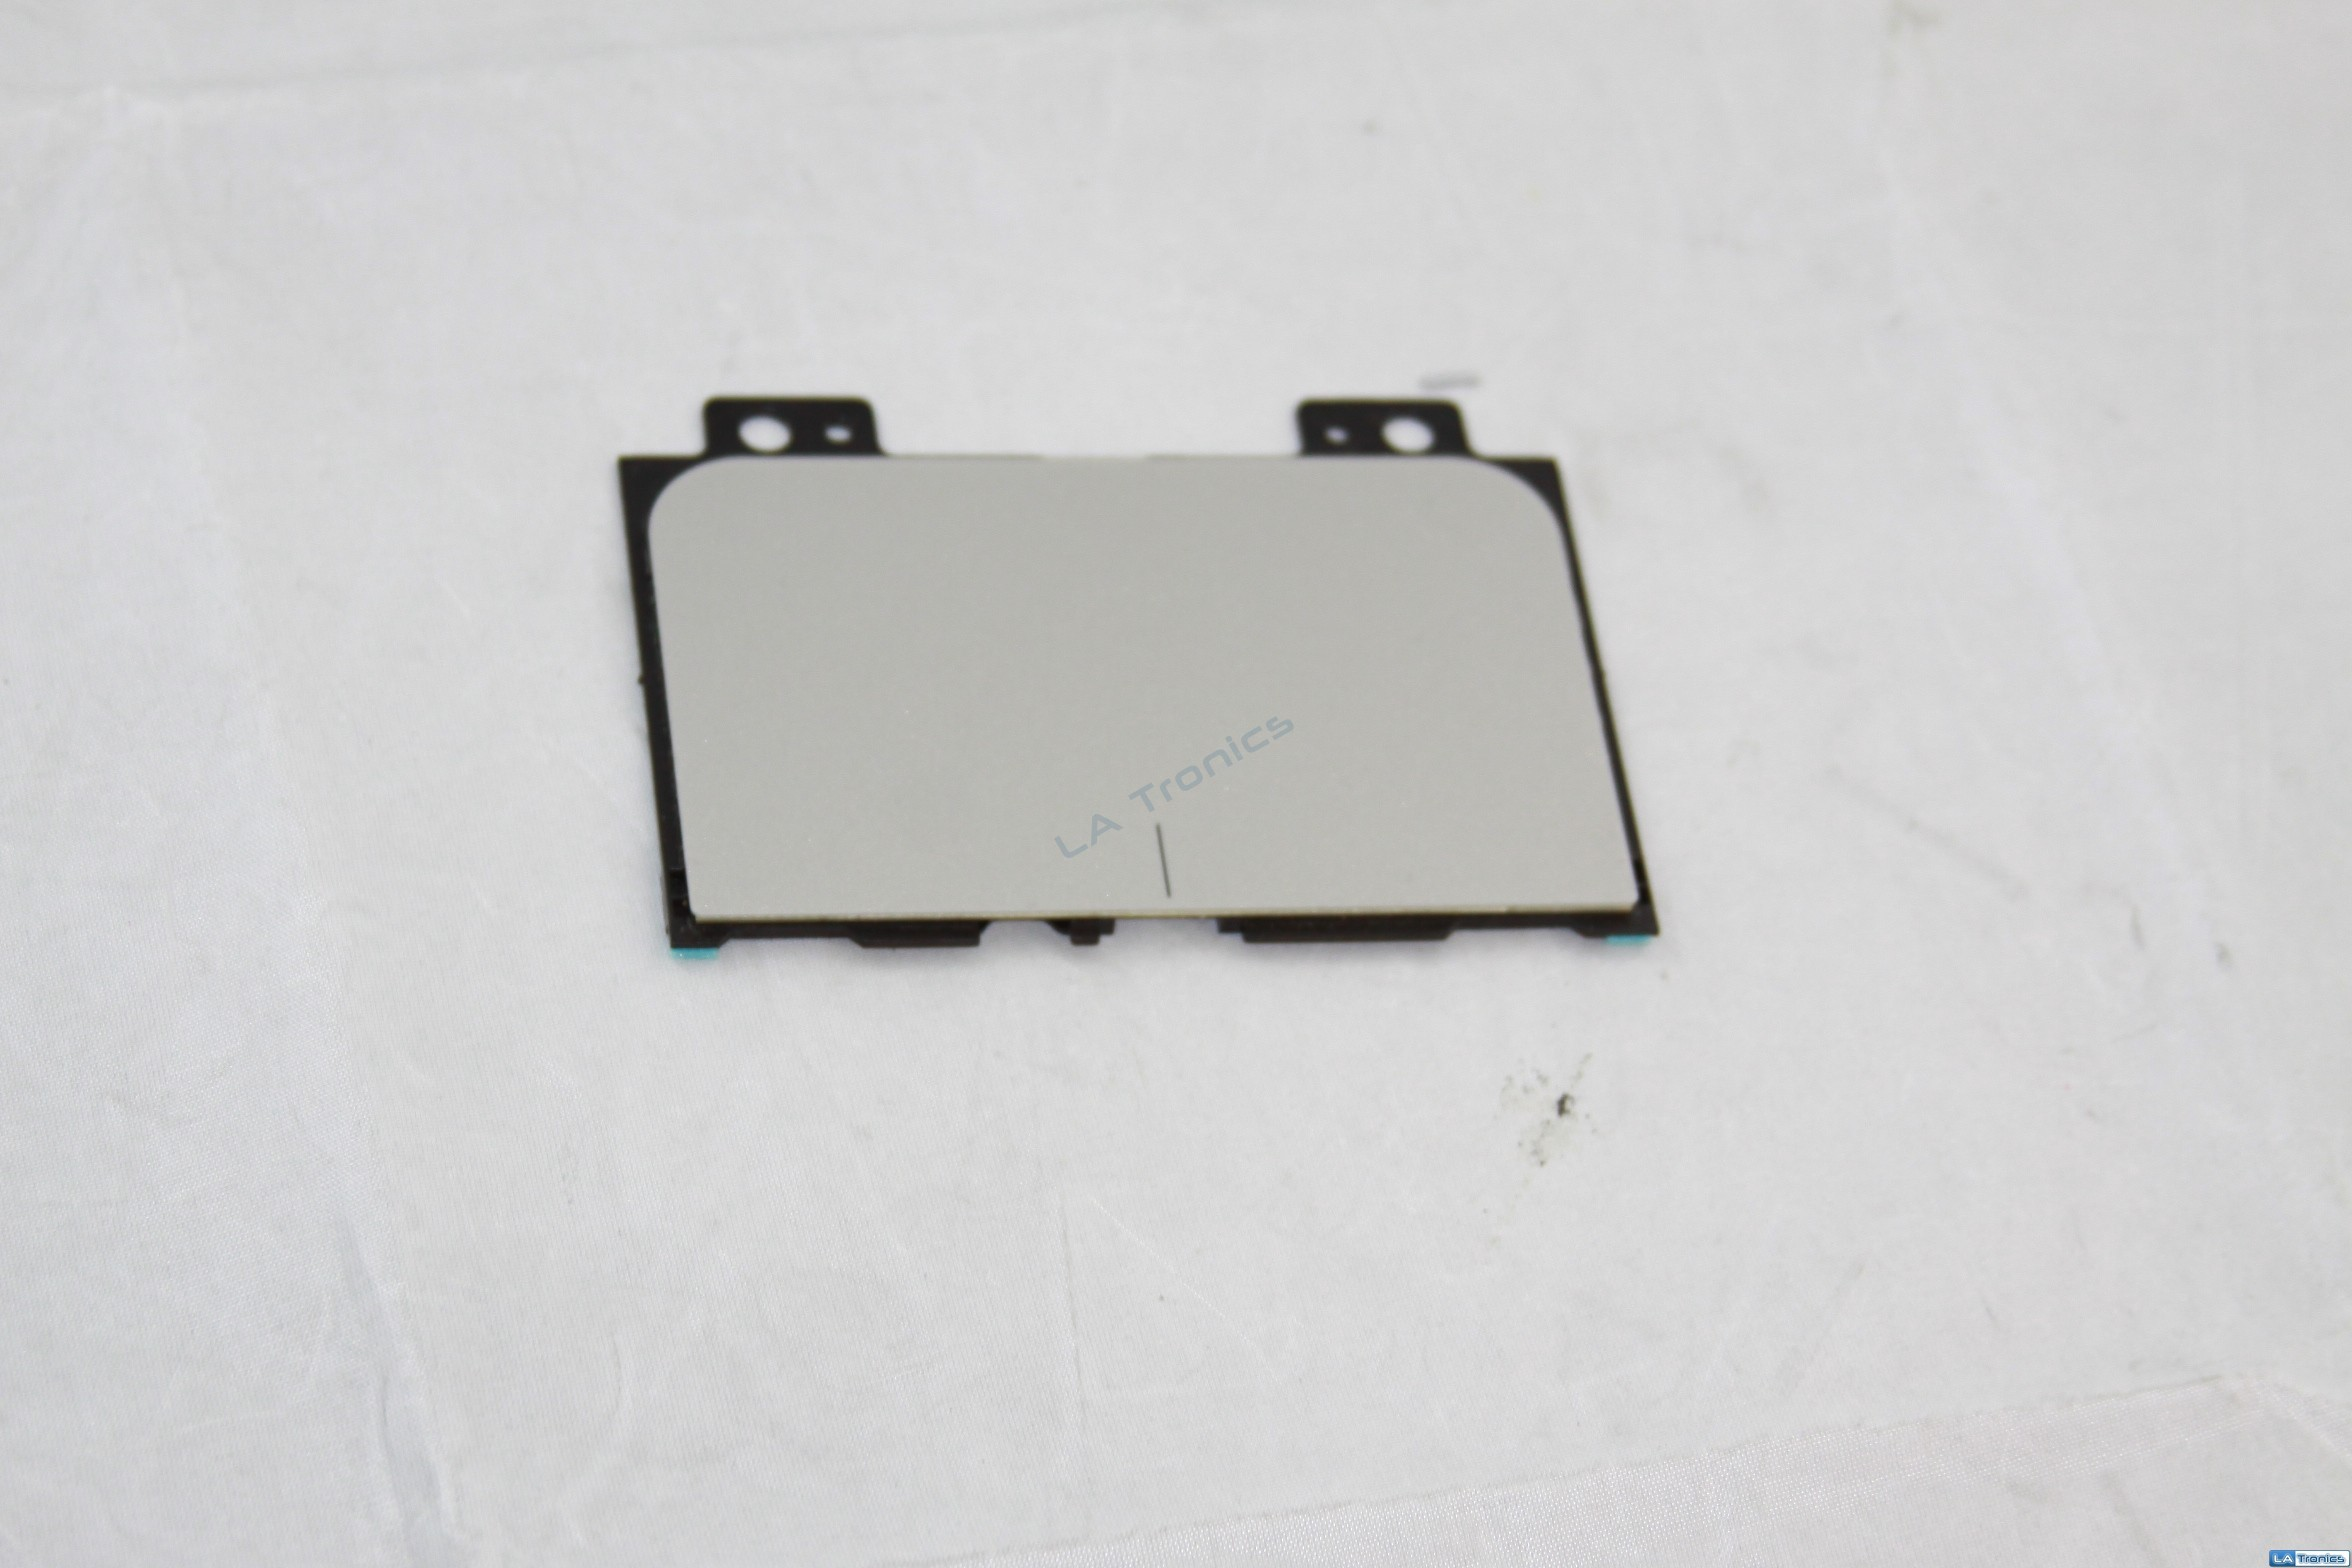 Toshiba Satellite Radius P55W Touchpad Ribbon Cable A000298750 Tested, Grade A